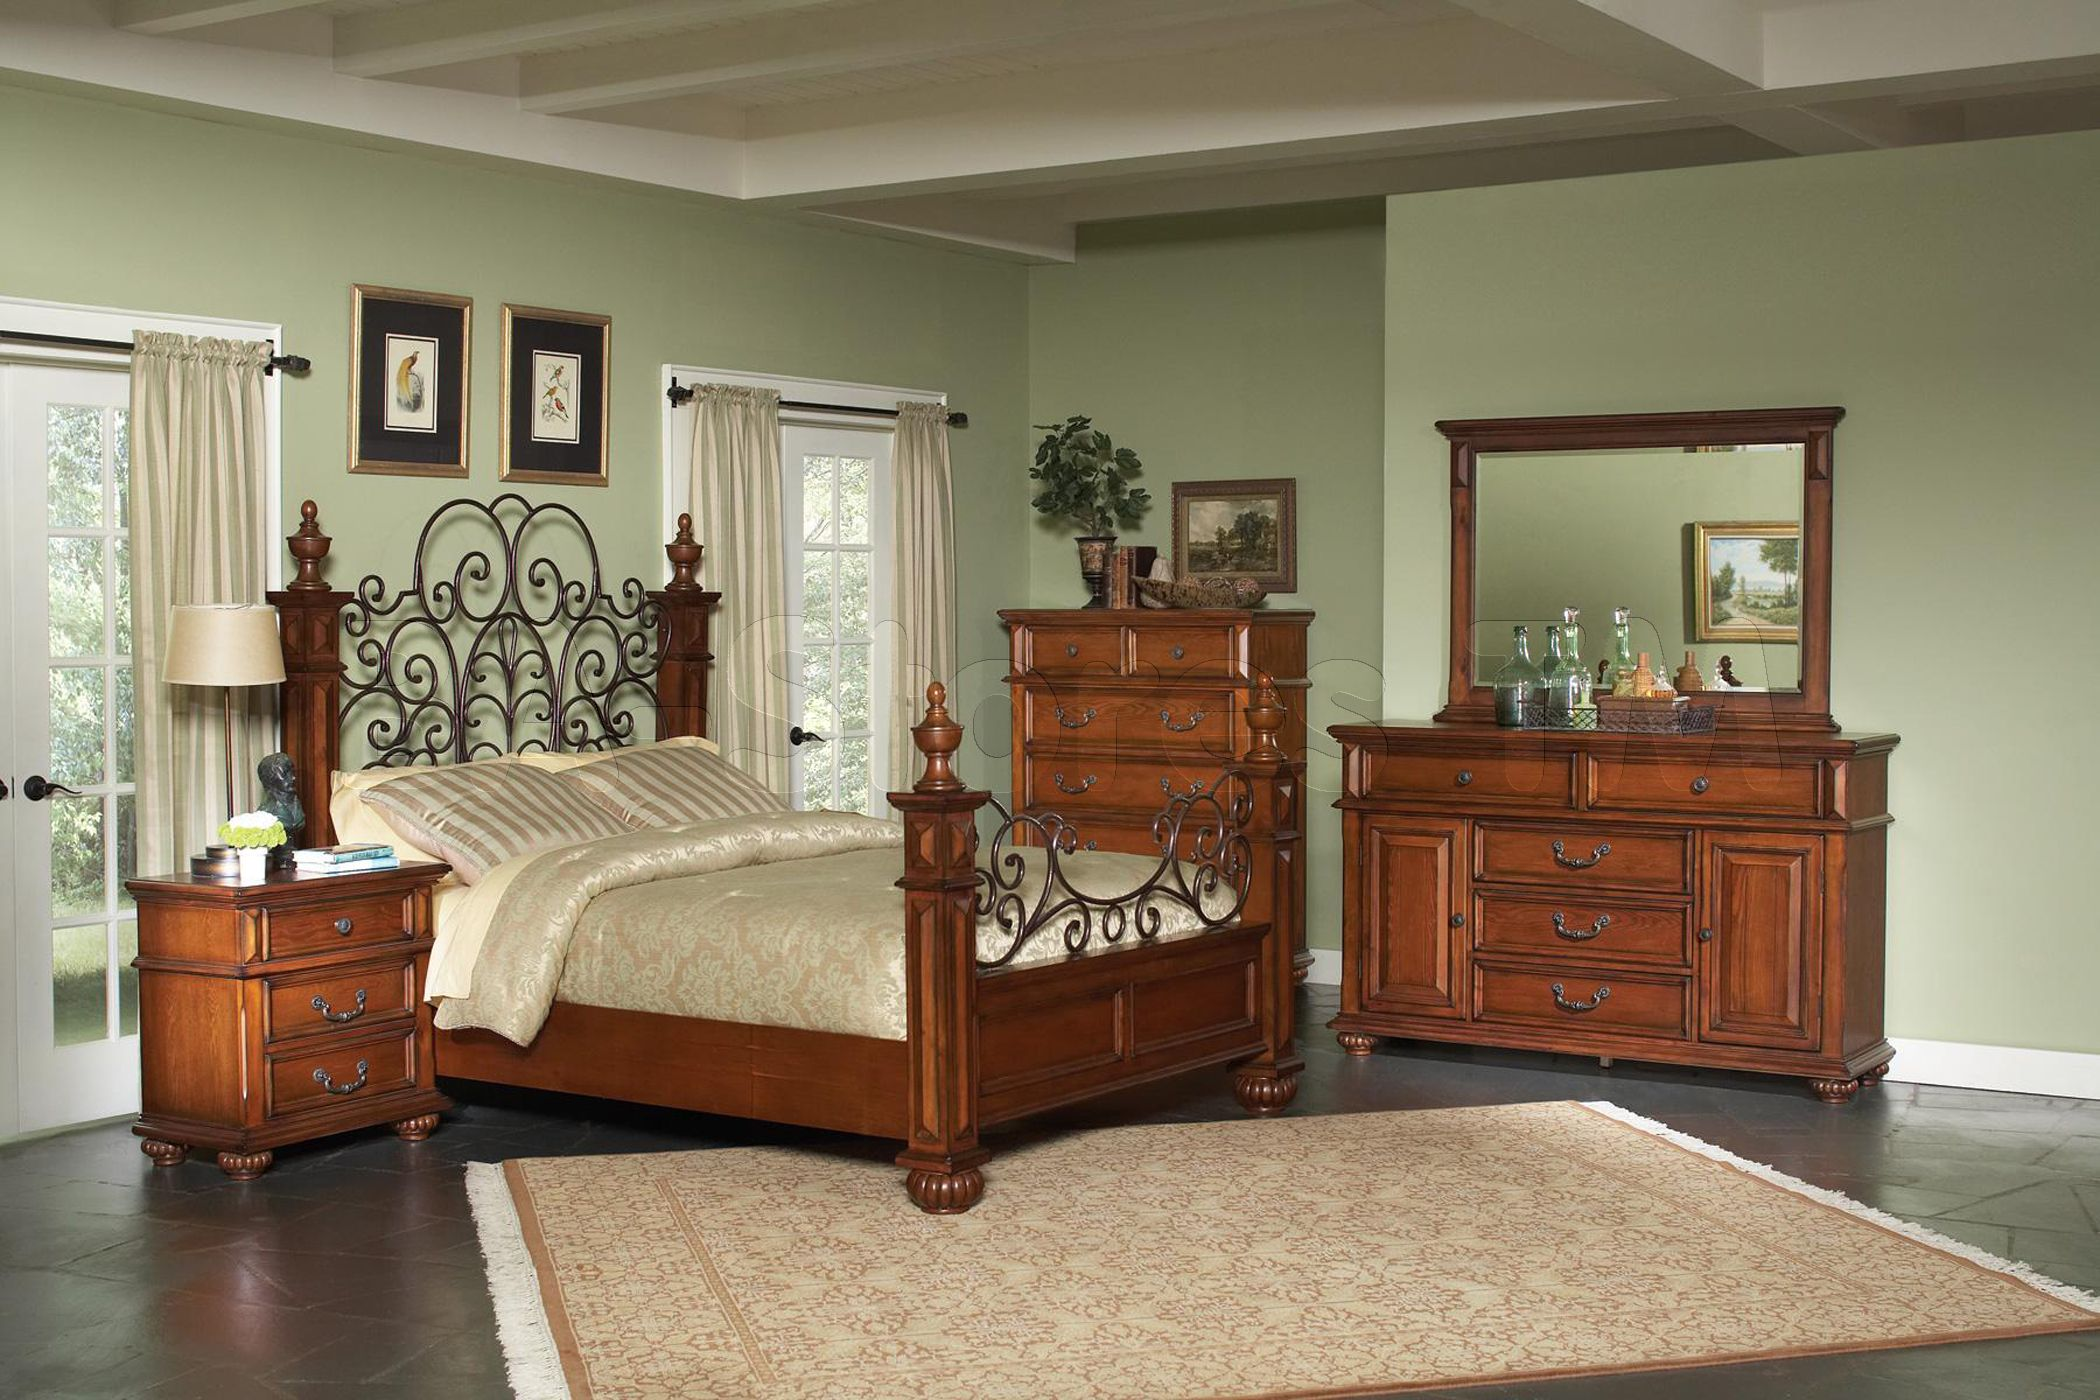 Luxury Furniture World Is The Top Online Furniture Shop Of UK The Shop Is Offering Finest And